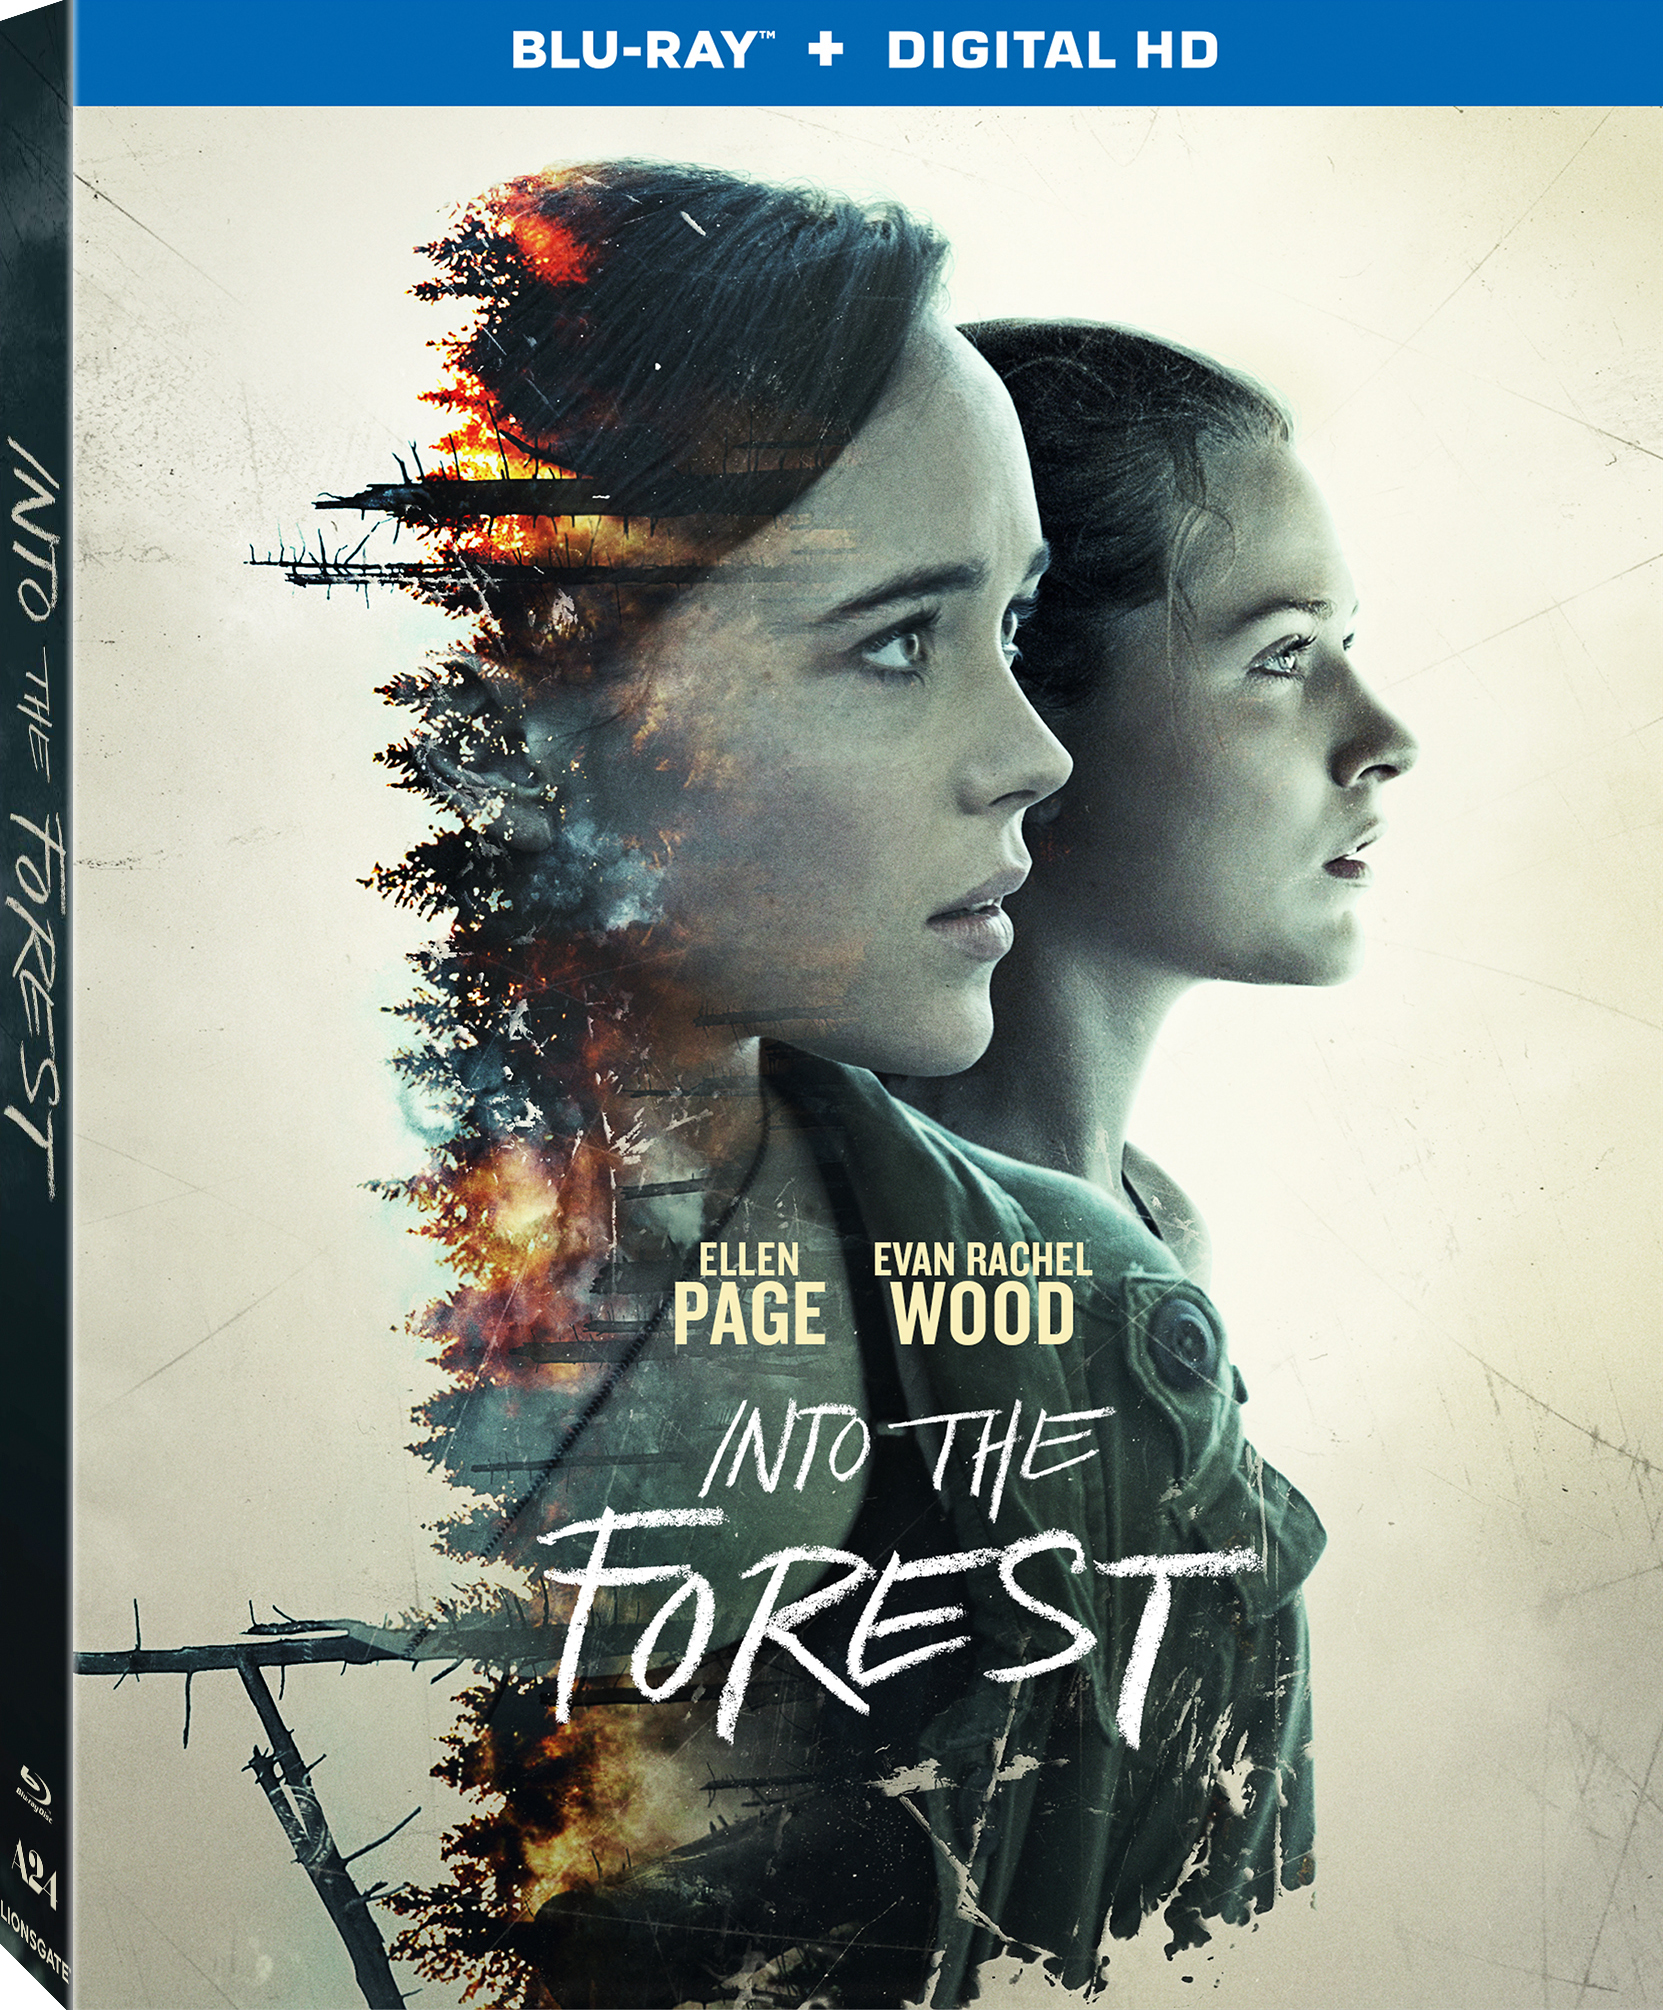 Into the Forest (2015) poster image